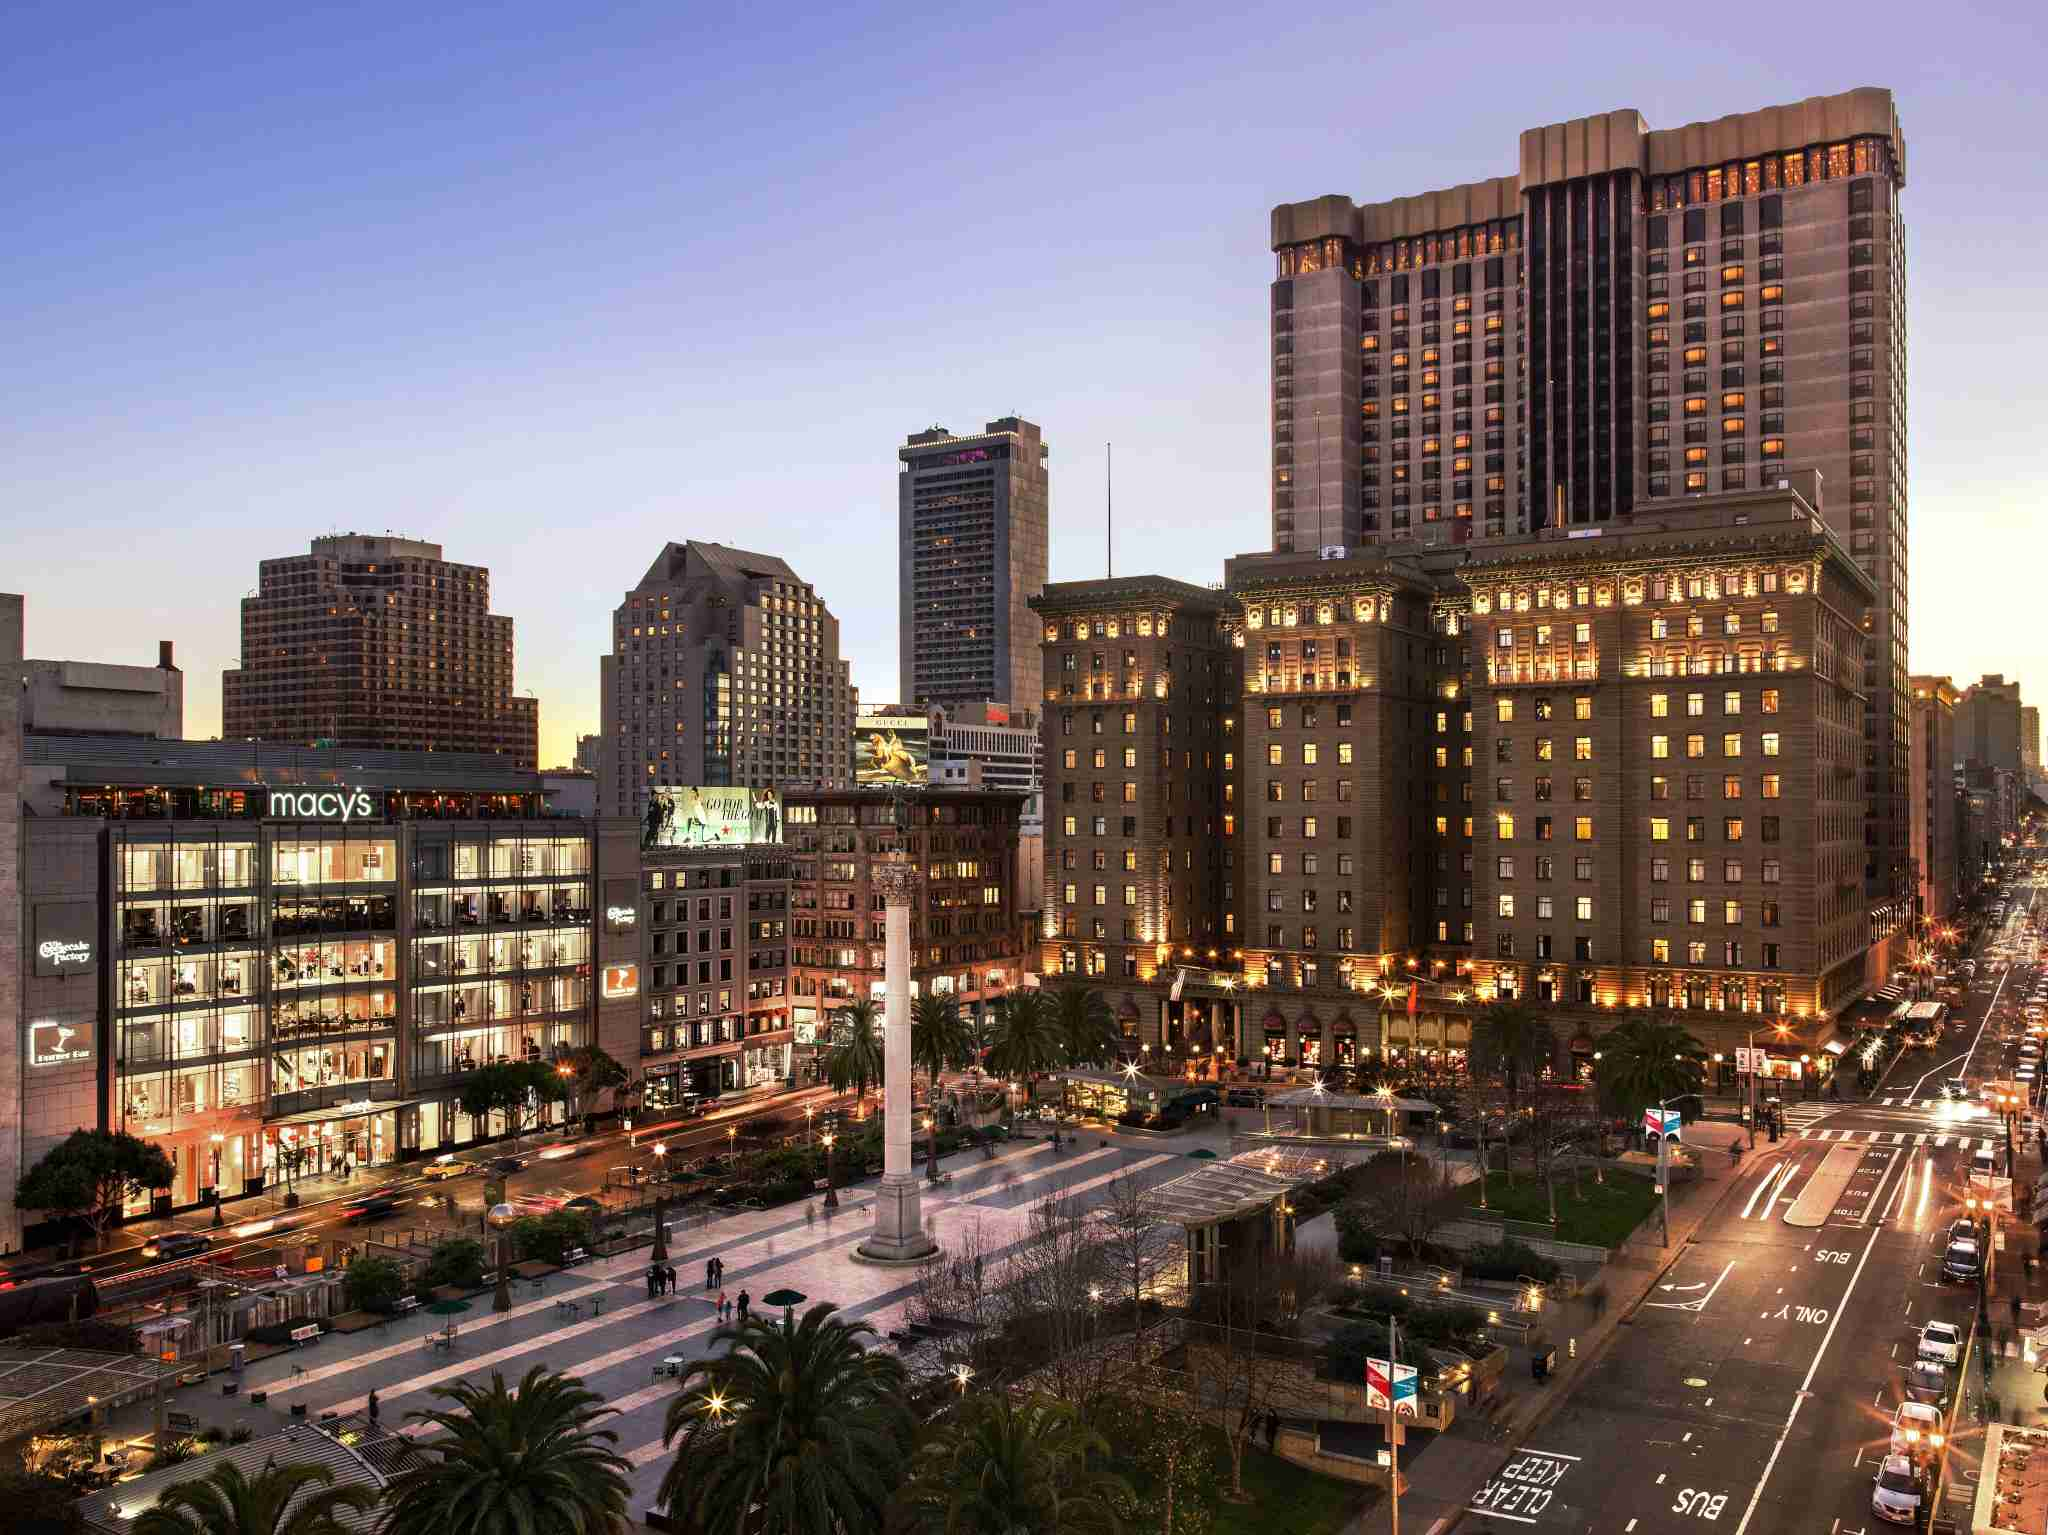 The Westin St. Francis Hotel is conveniently located right on Union Square in San Francisco. (photo courtesy of the hotel)